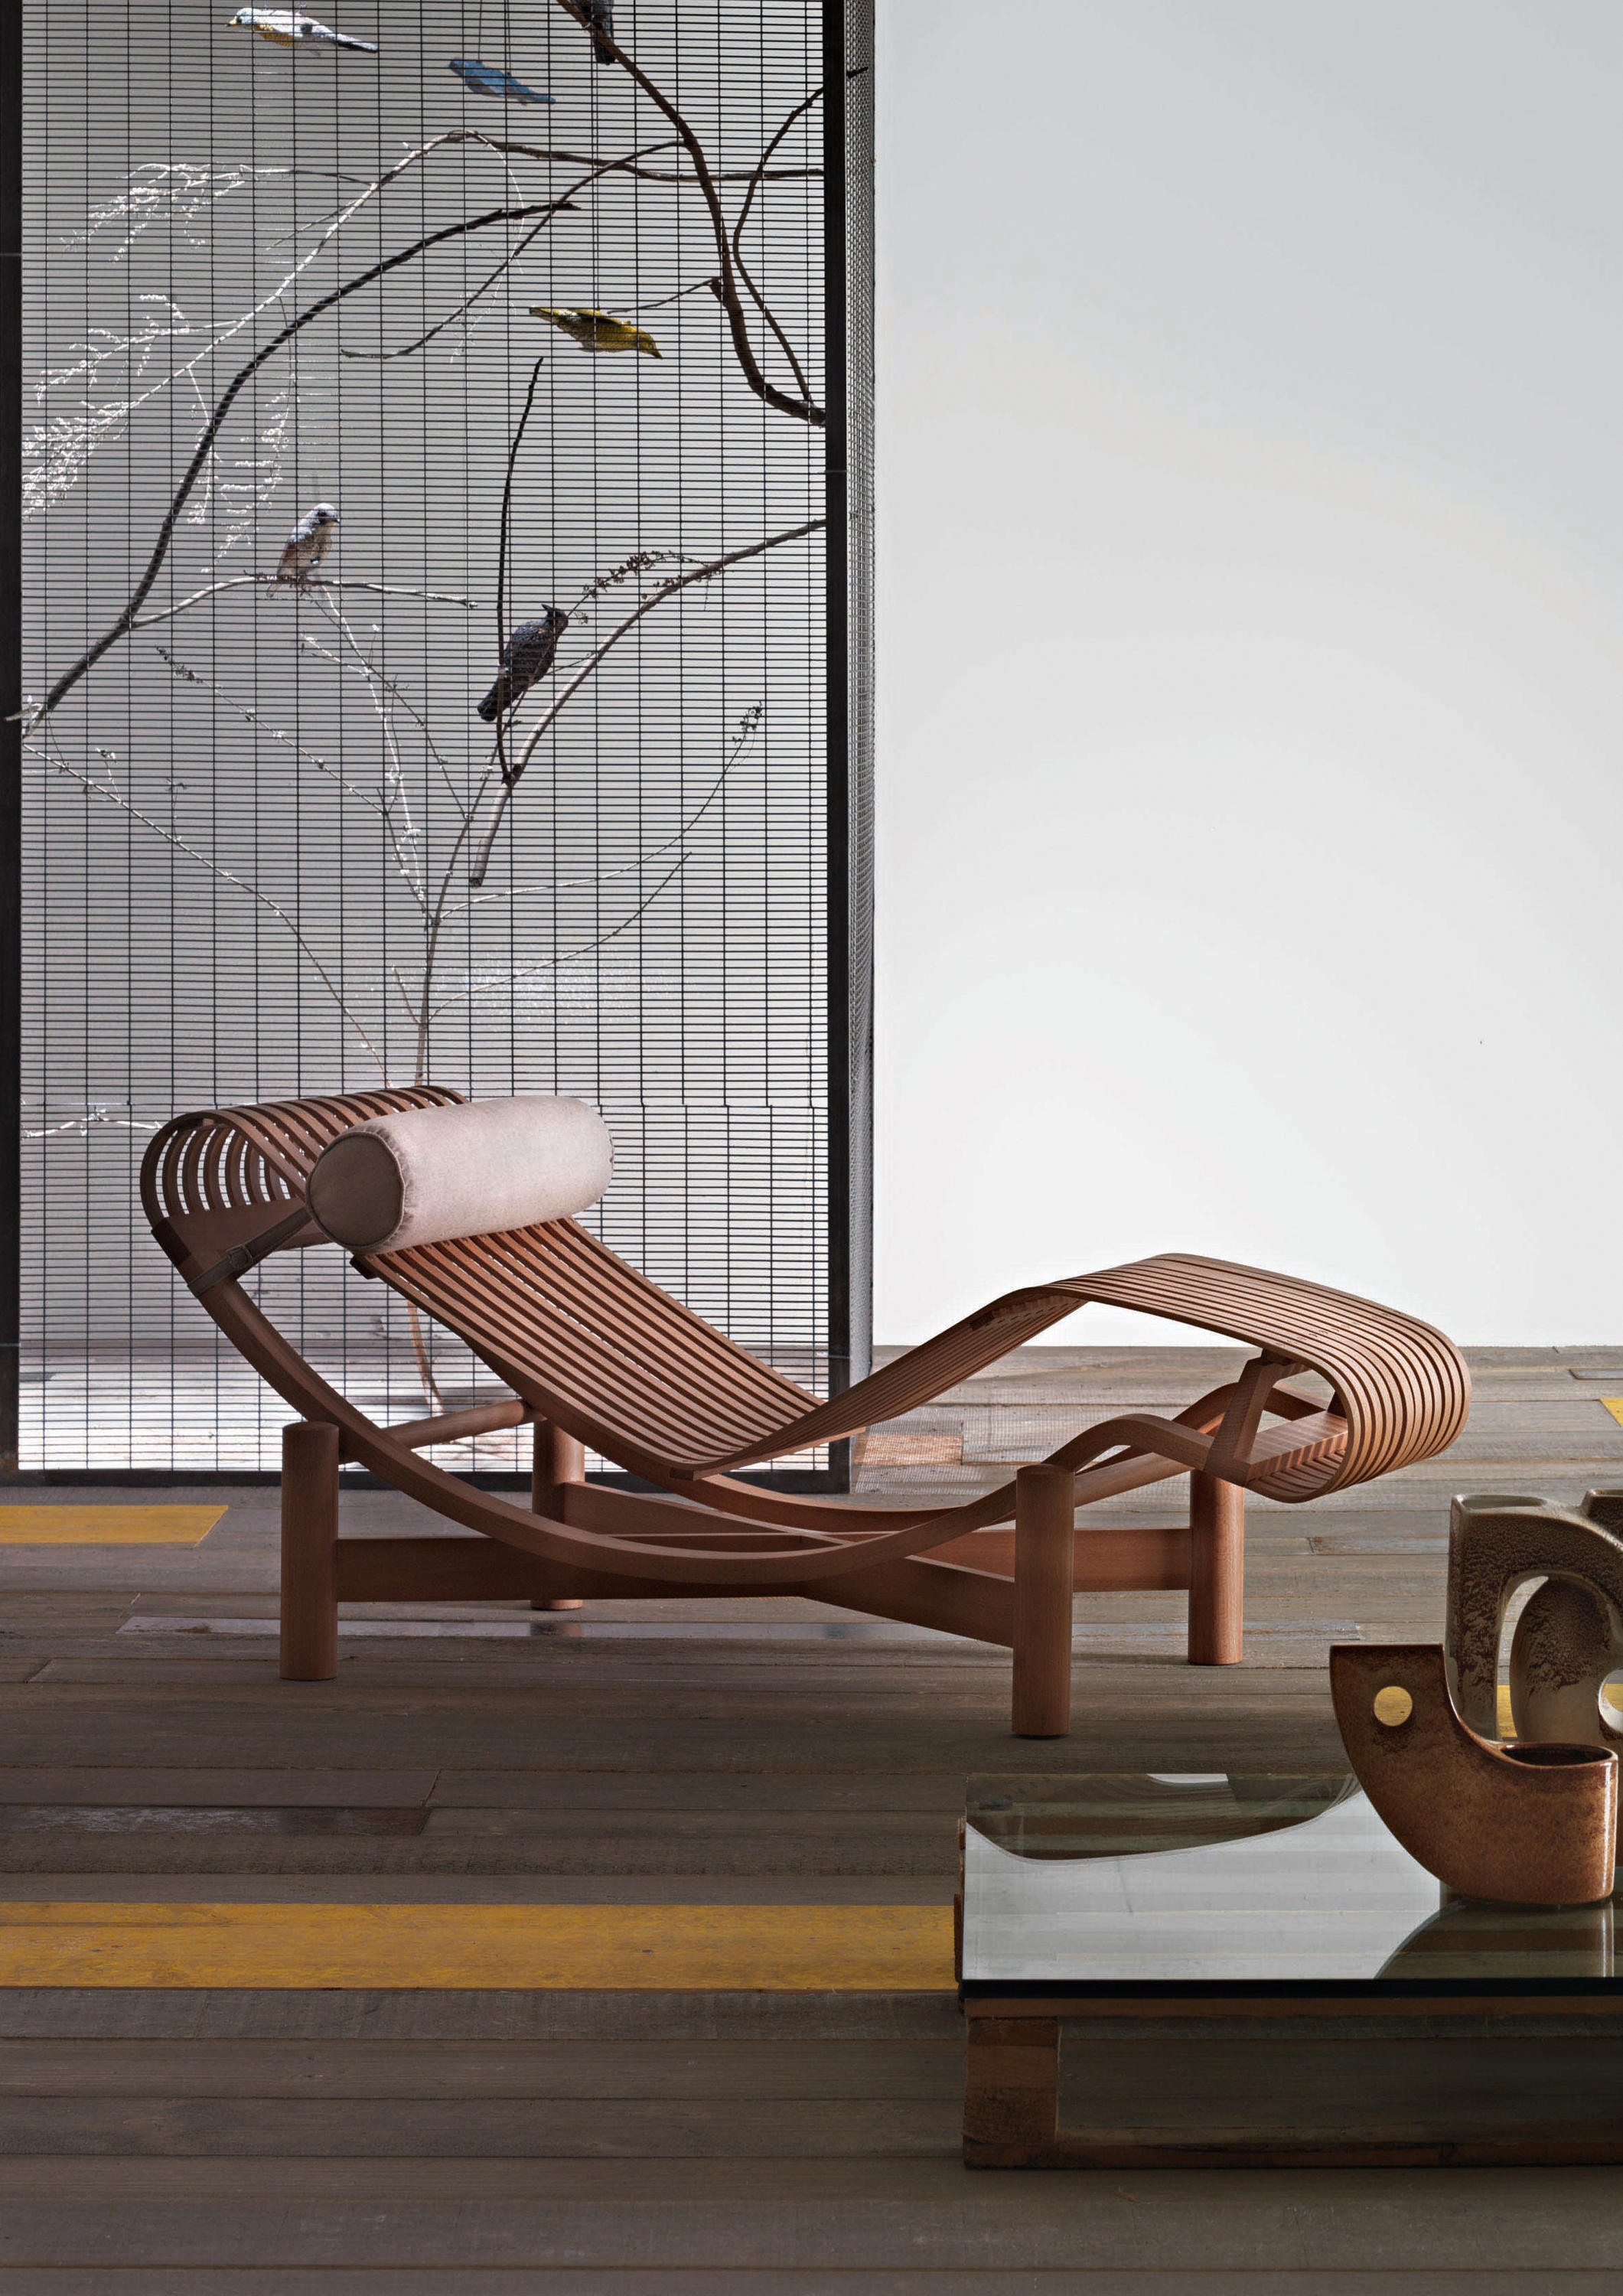 522 tokyo outdoor sun loungers from cassina architonic. Black Bedroom Furniture Sets. Home Design Ideas